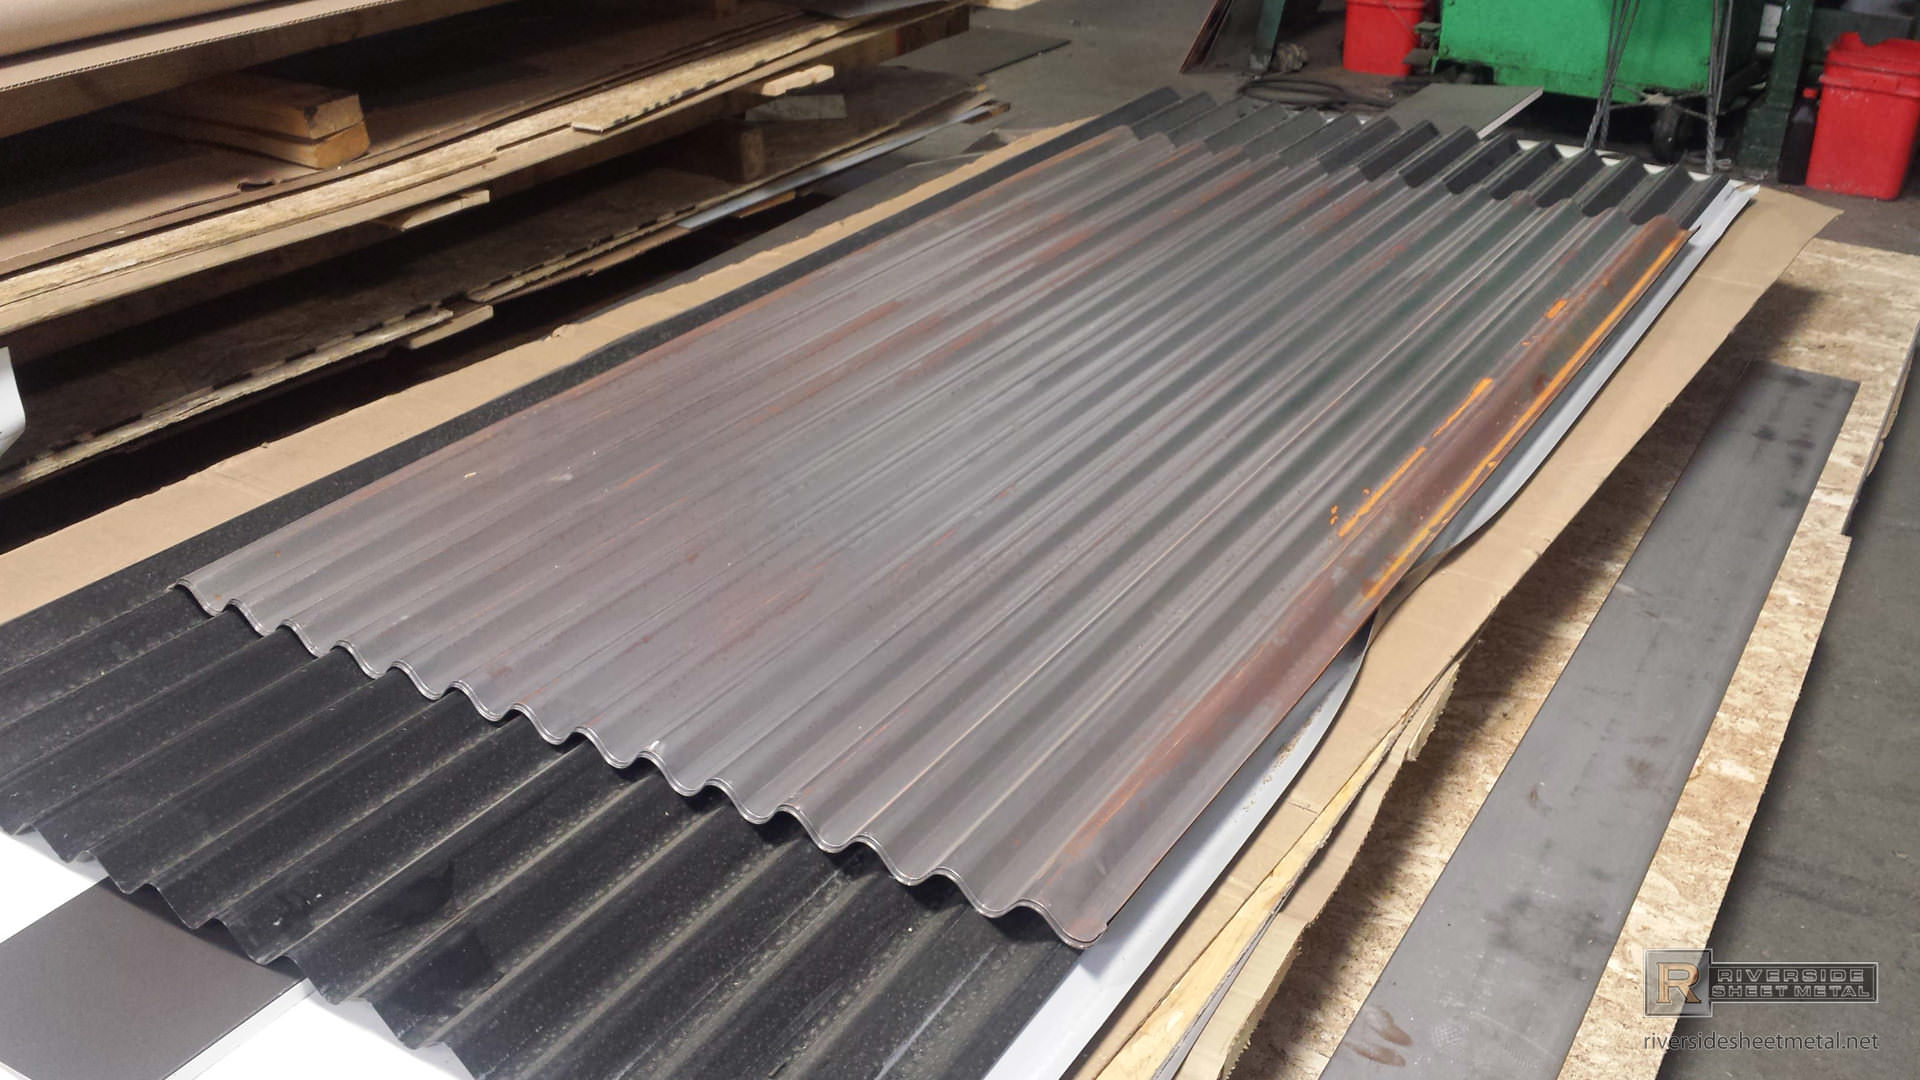 Corrugated Galvanized Panels : Corrugated roof wall panels steel aluminum corten more